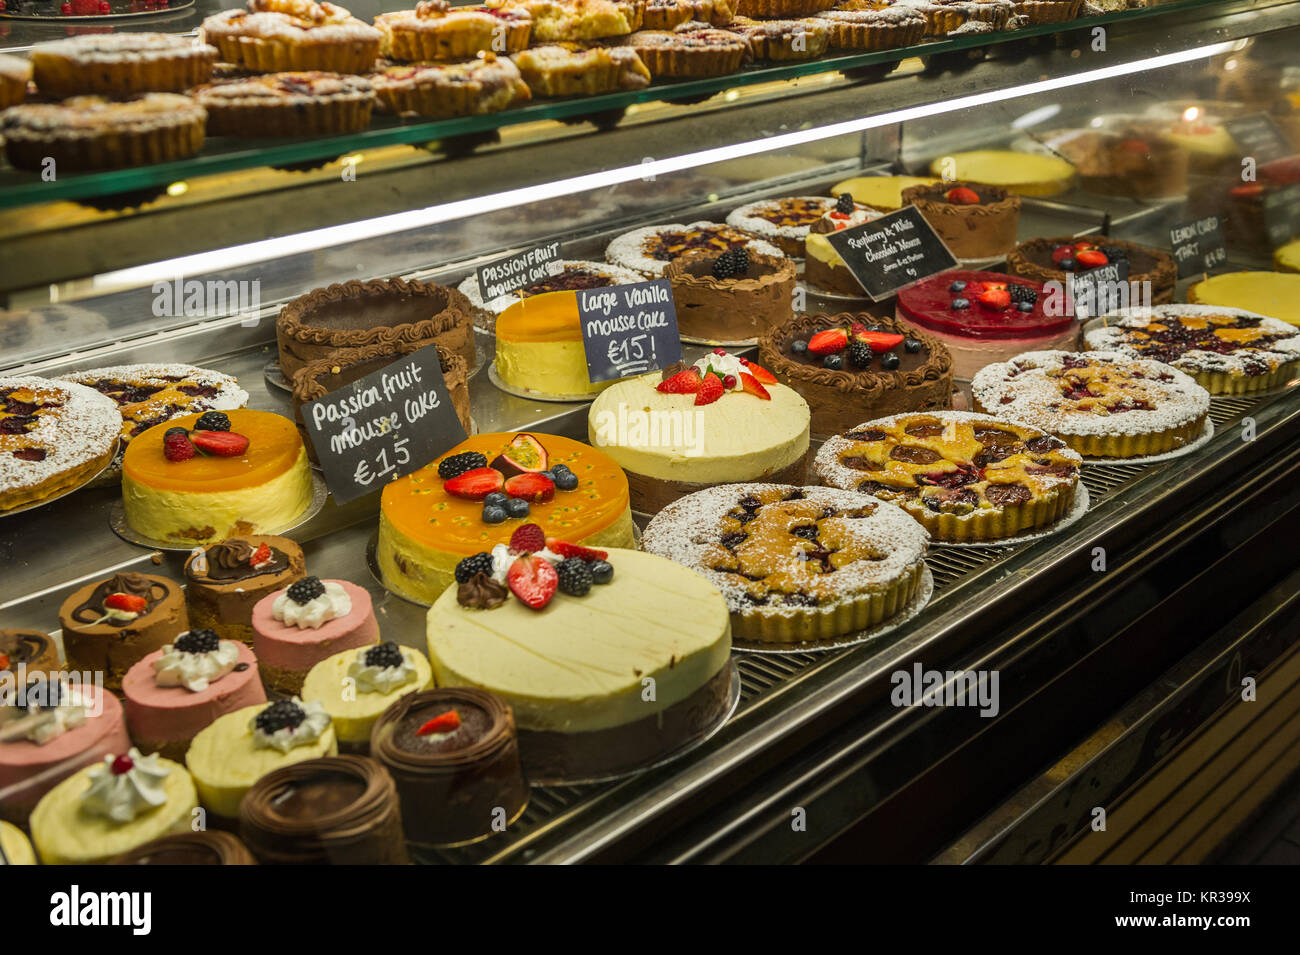 cakes-for-sale-in-a-display-cabinet-in-the-english-market-cork-ireland-KR399X.jpg